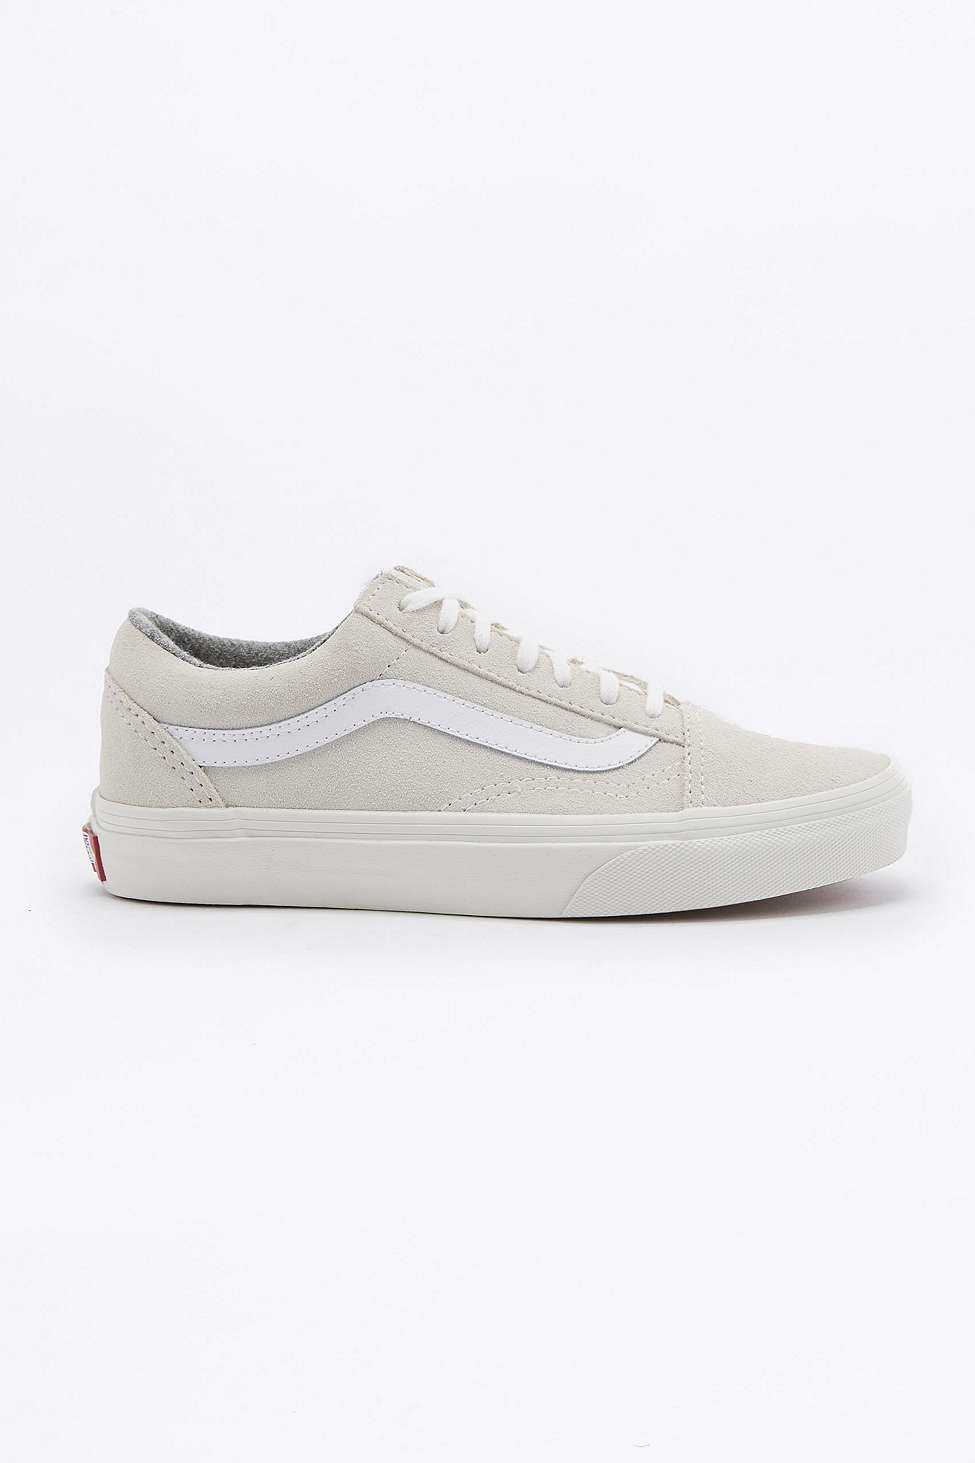 Vans Old Skool Off-white Suede Trainers